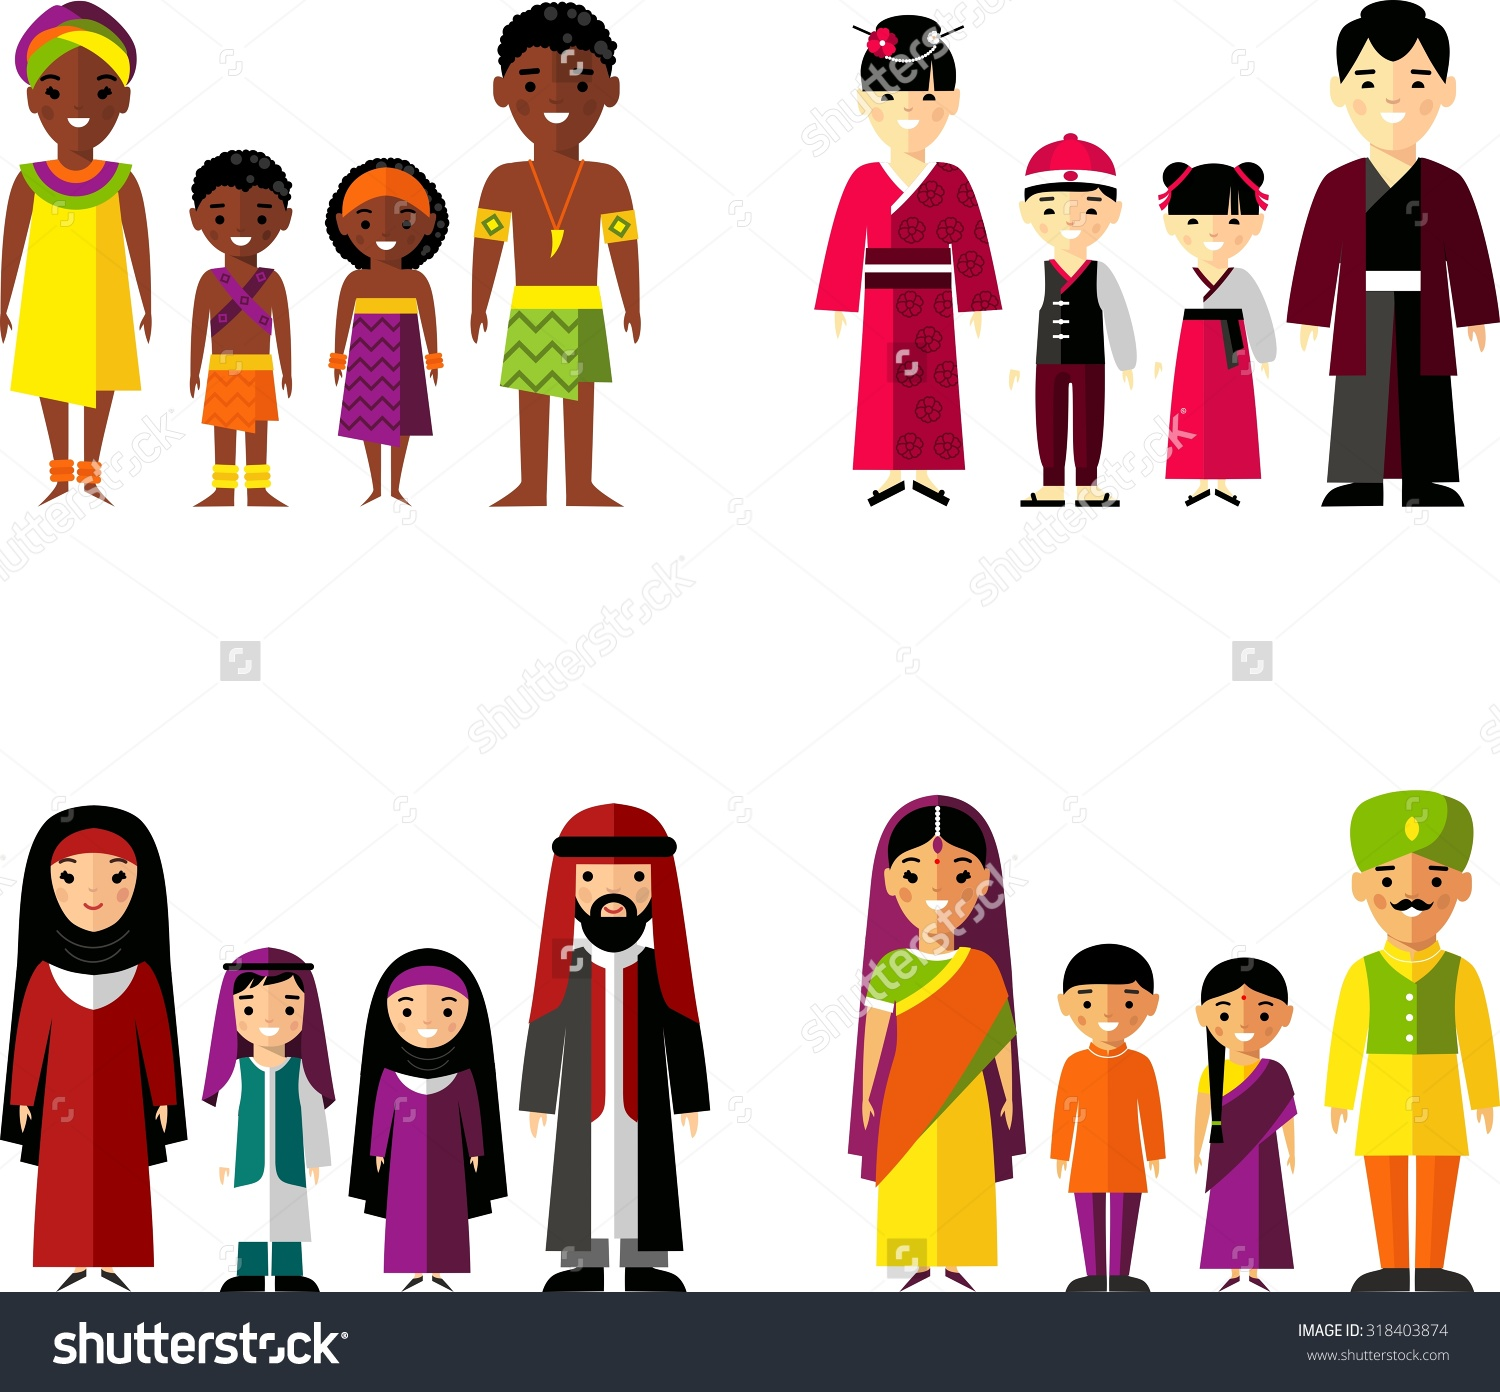 Traditional indian family clipart banner black and white stock Indian family clipart black and white - ClipartFest banner black and white stock